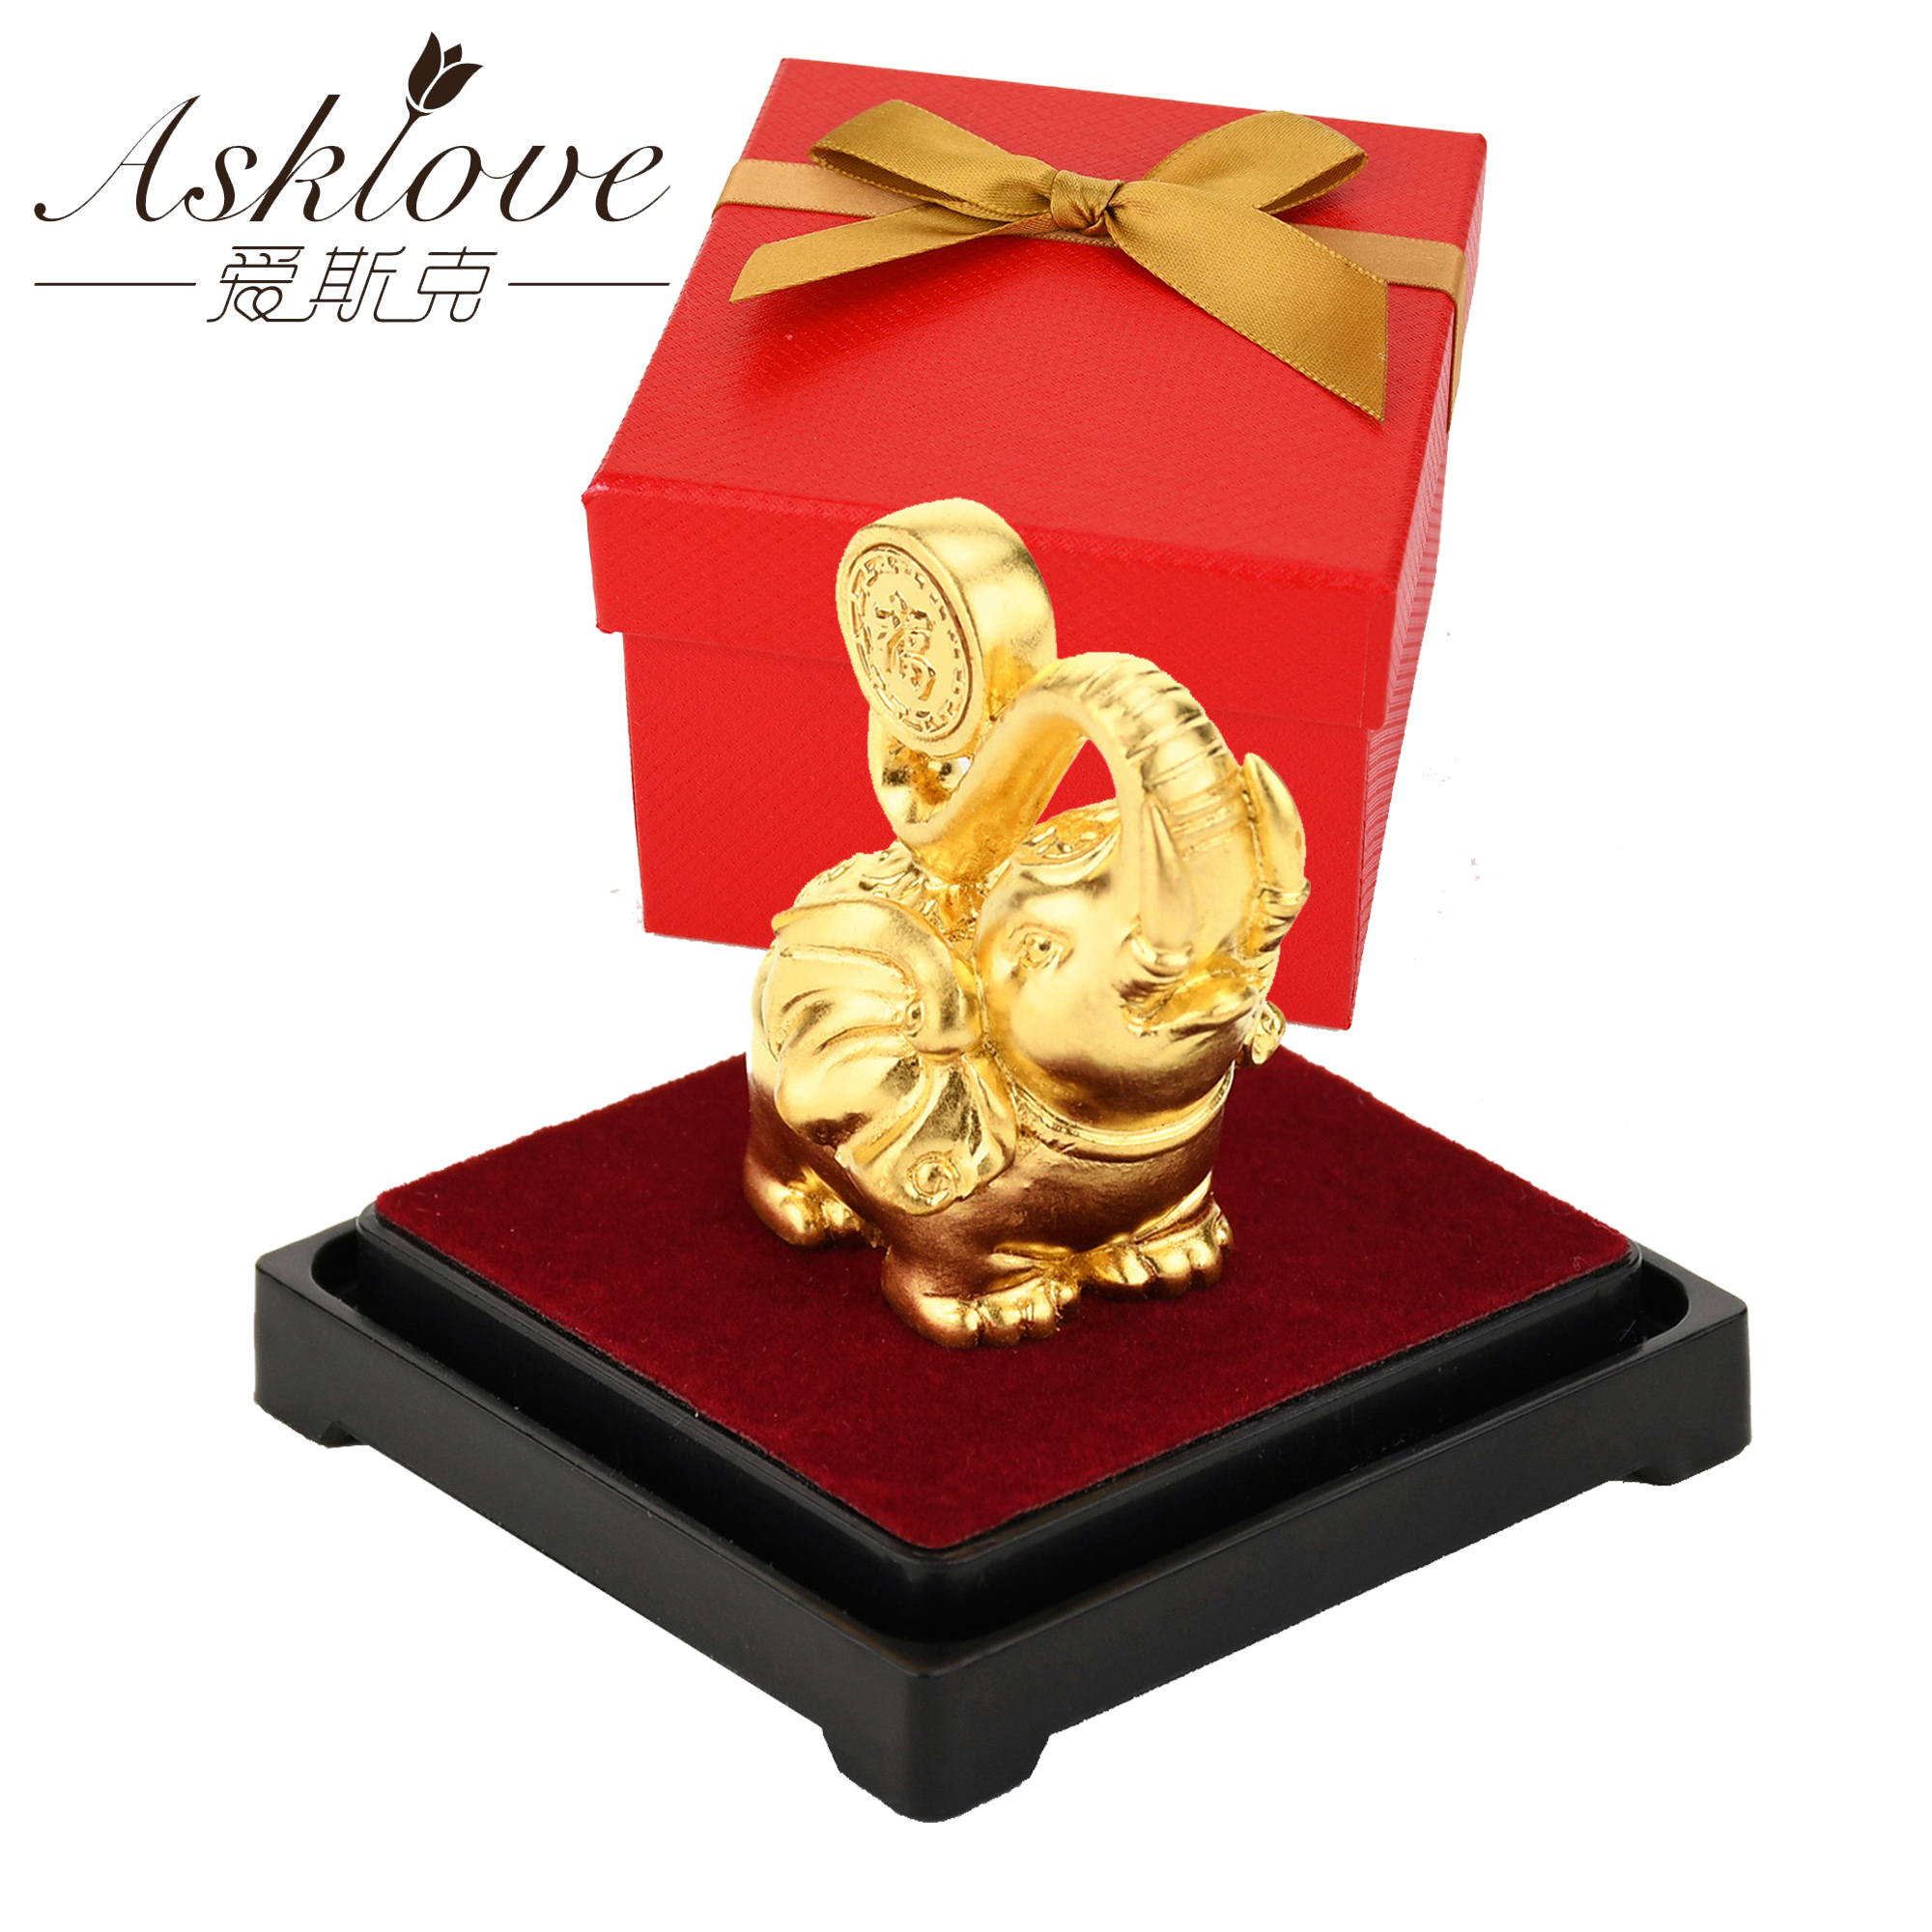 Lucky Elephant Feng Shui decor 24K Gold Foil Elephant Statue Figurine Office Ornament Crafts Collect Wealth Home Office DecorFigurines & Miniatures   -